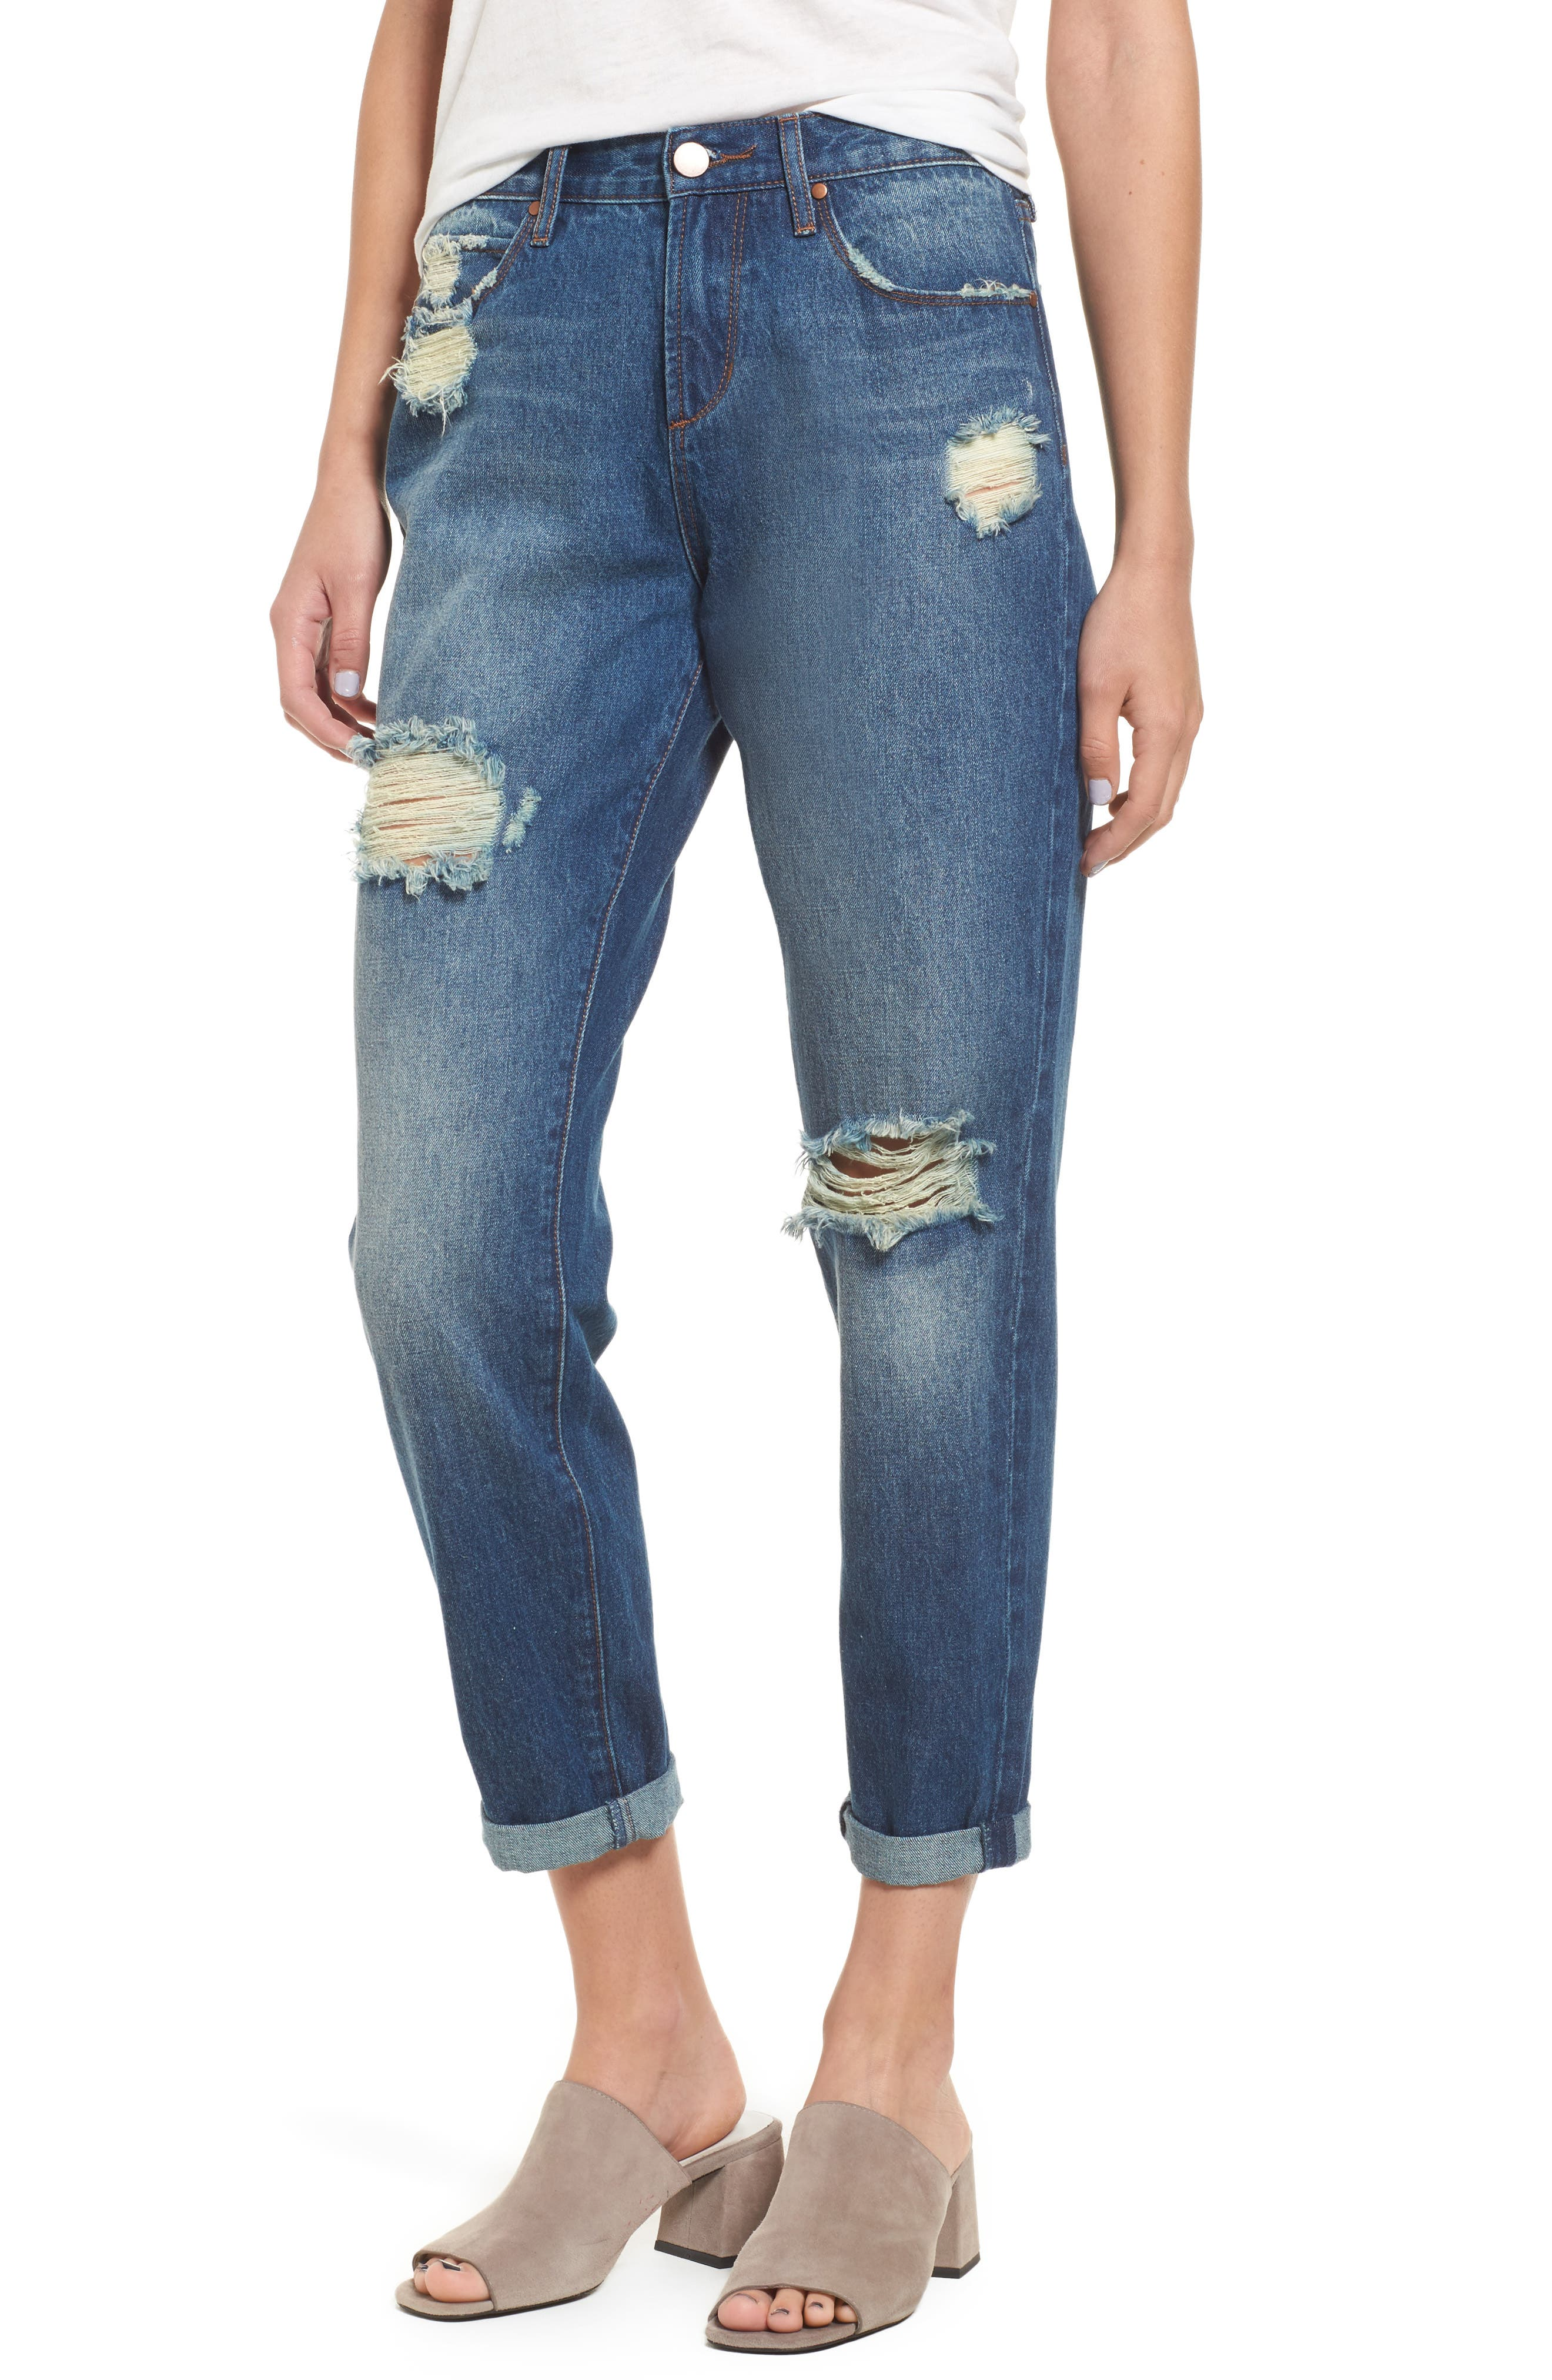 Leith Ripped High Waist Boyfriend Jeans